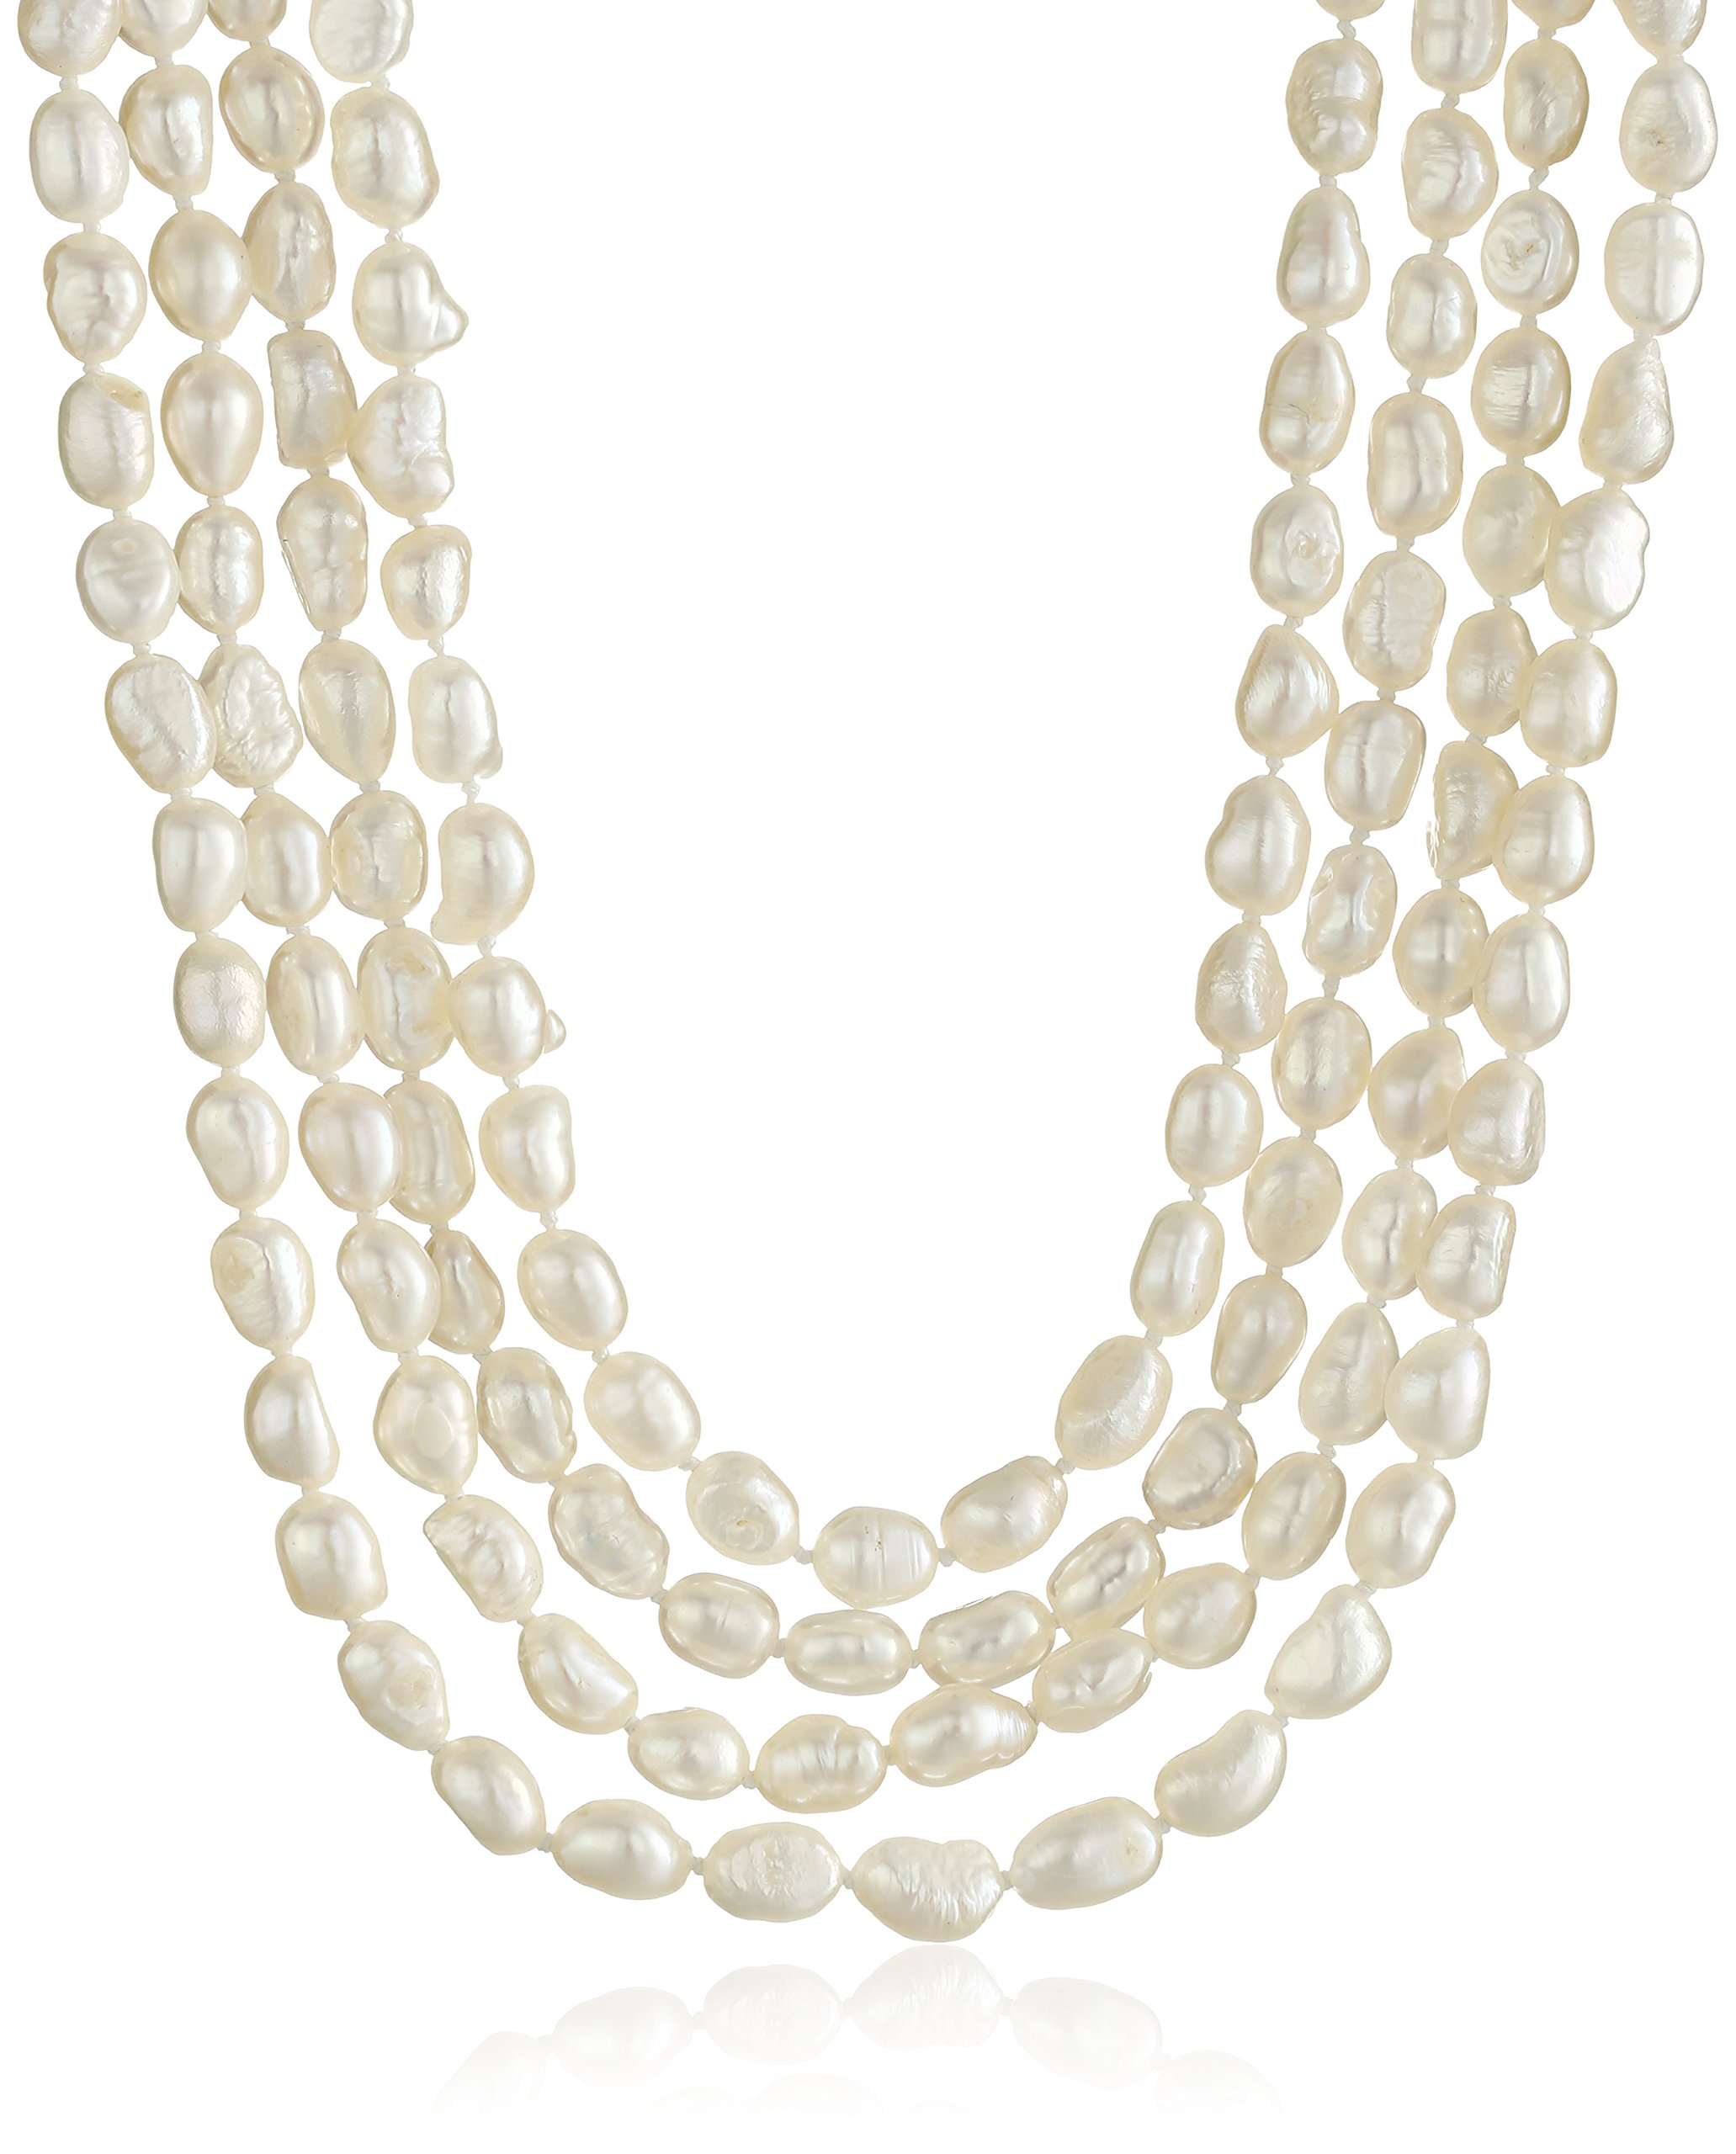 5-6mm White Baroque Freshwater Cultured Pearl Endless Necklace, 100''